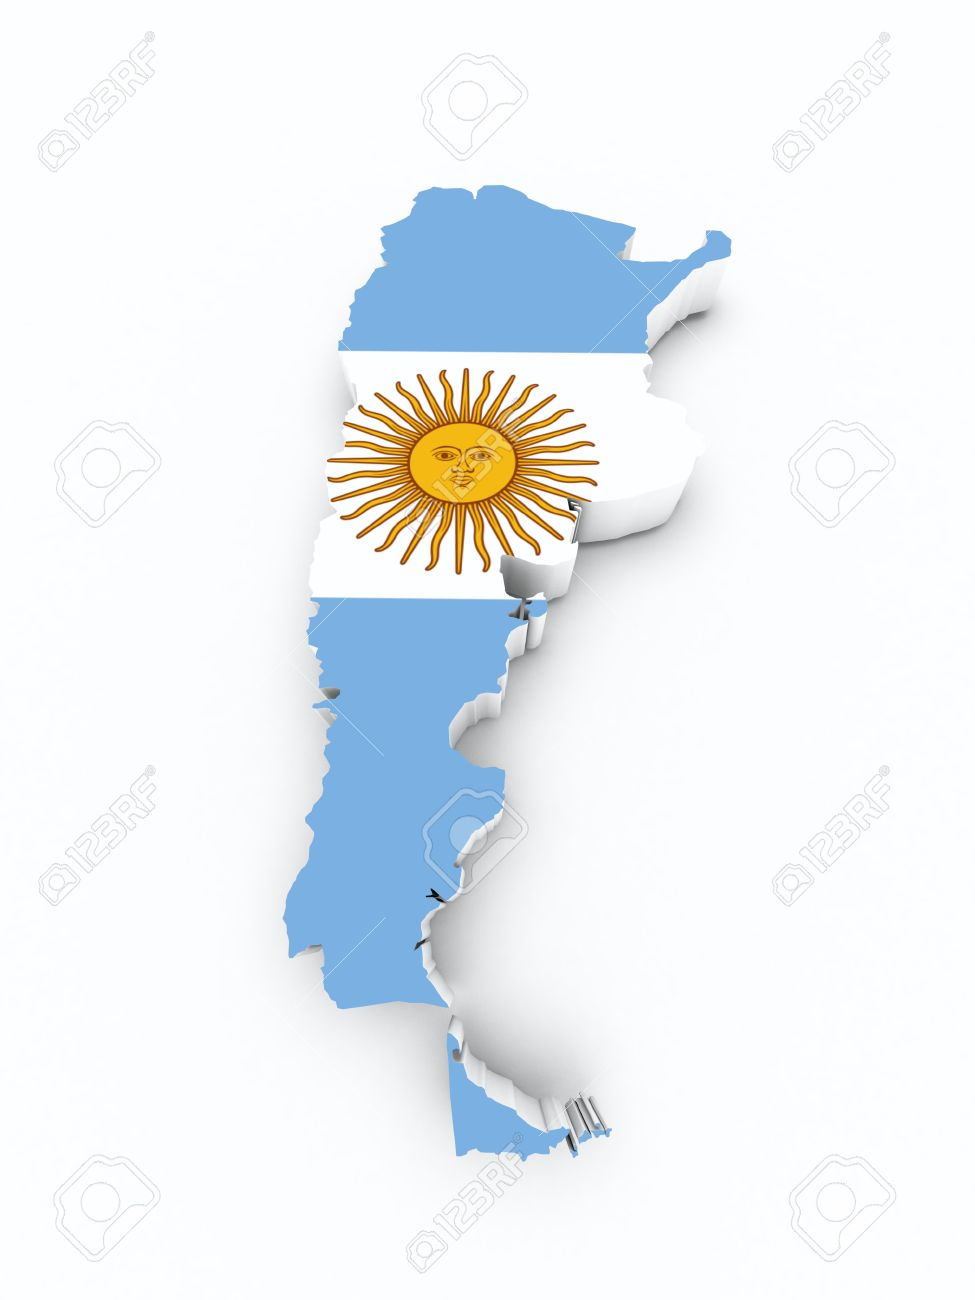 Argentina Flag On D Map Stock Photo Picture And Royalty Free - Argentina 3d map